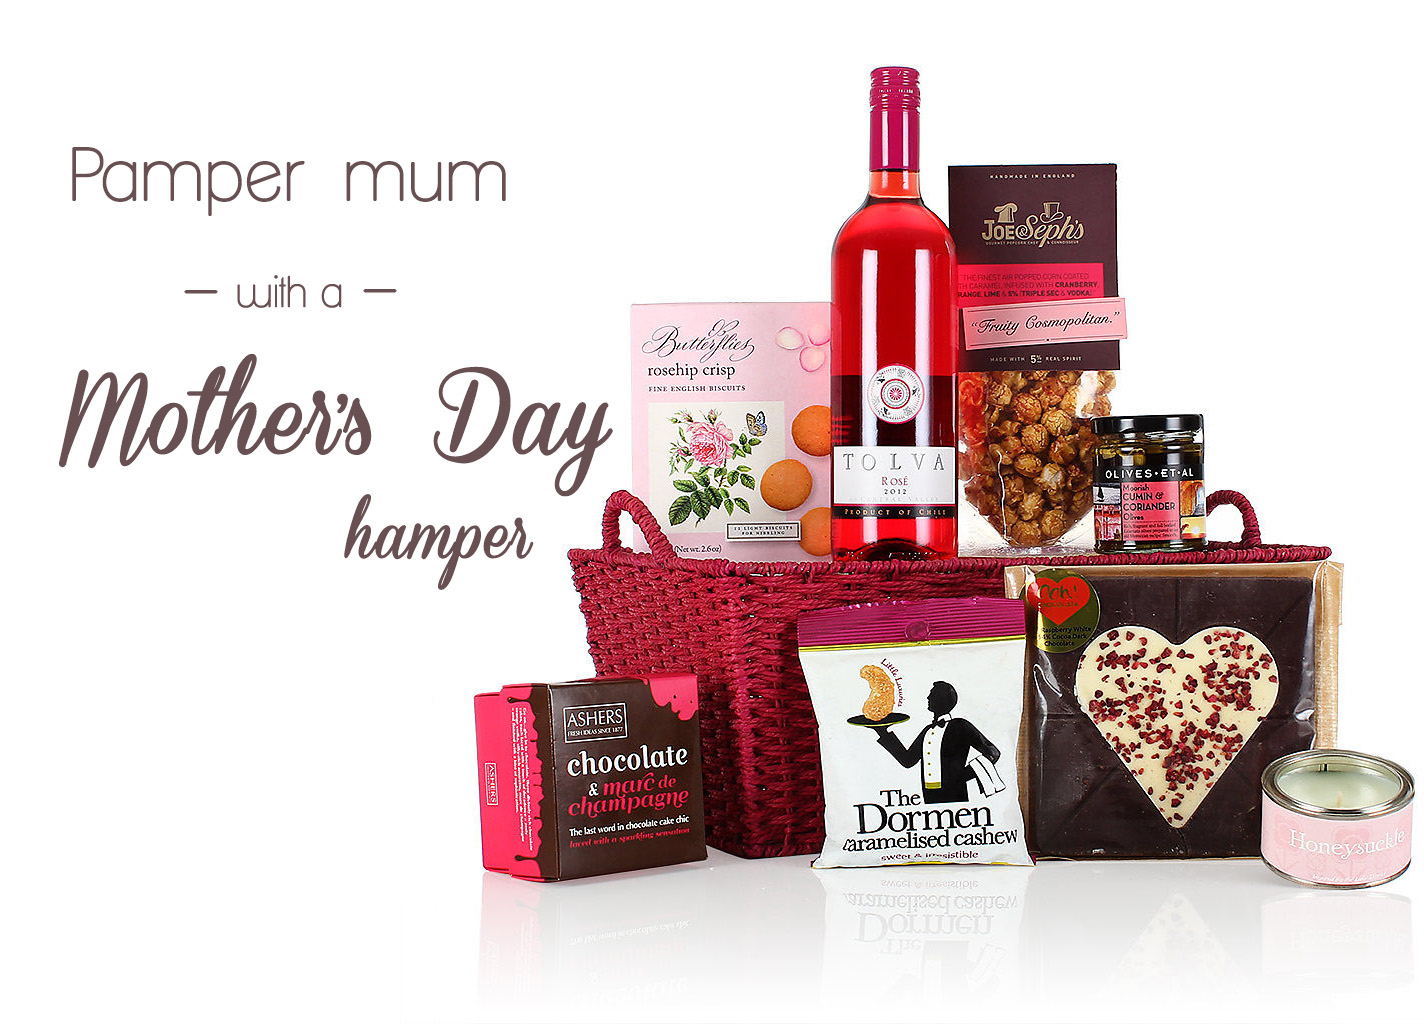 Pamper mum with a Mother's Day hamper